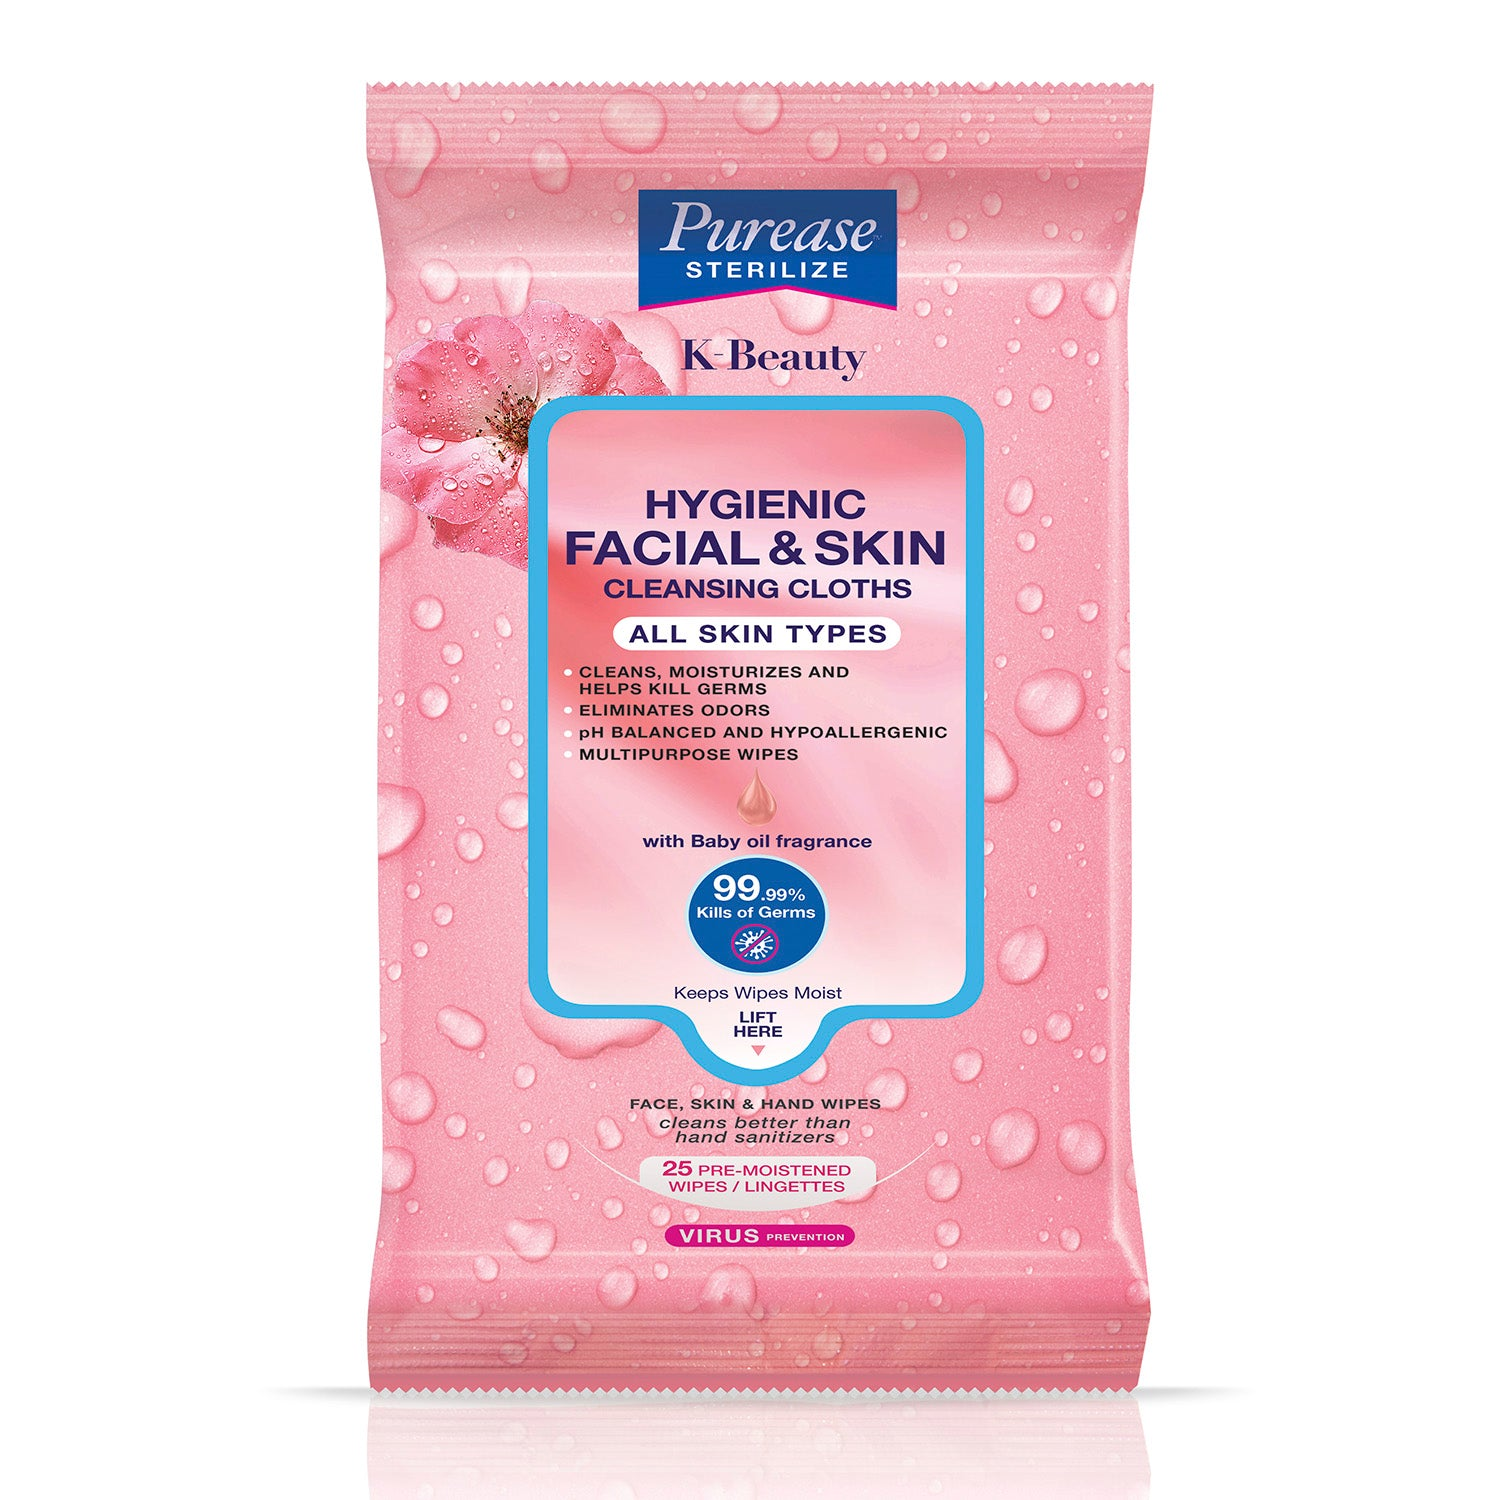 Purease Sterilize Hygienic Facial & Skin Cleansing Cloths